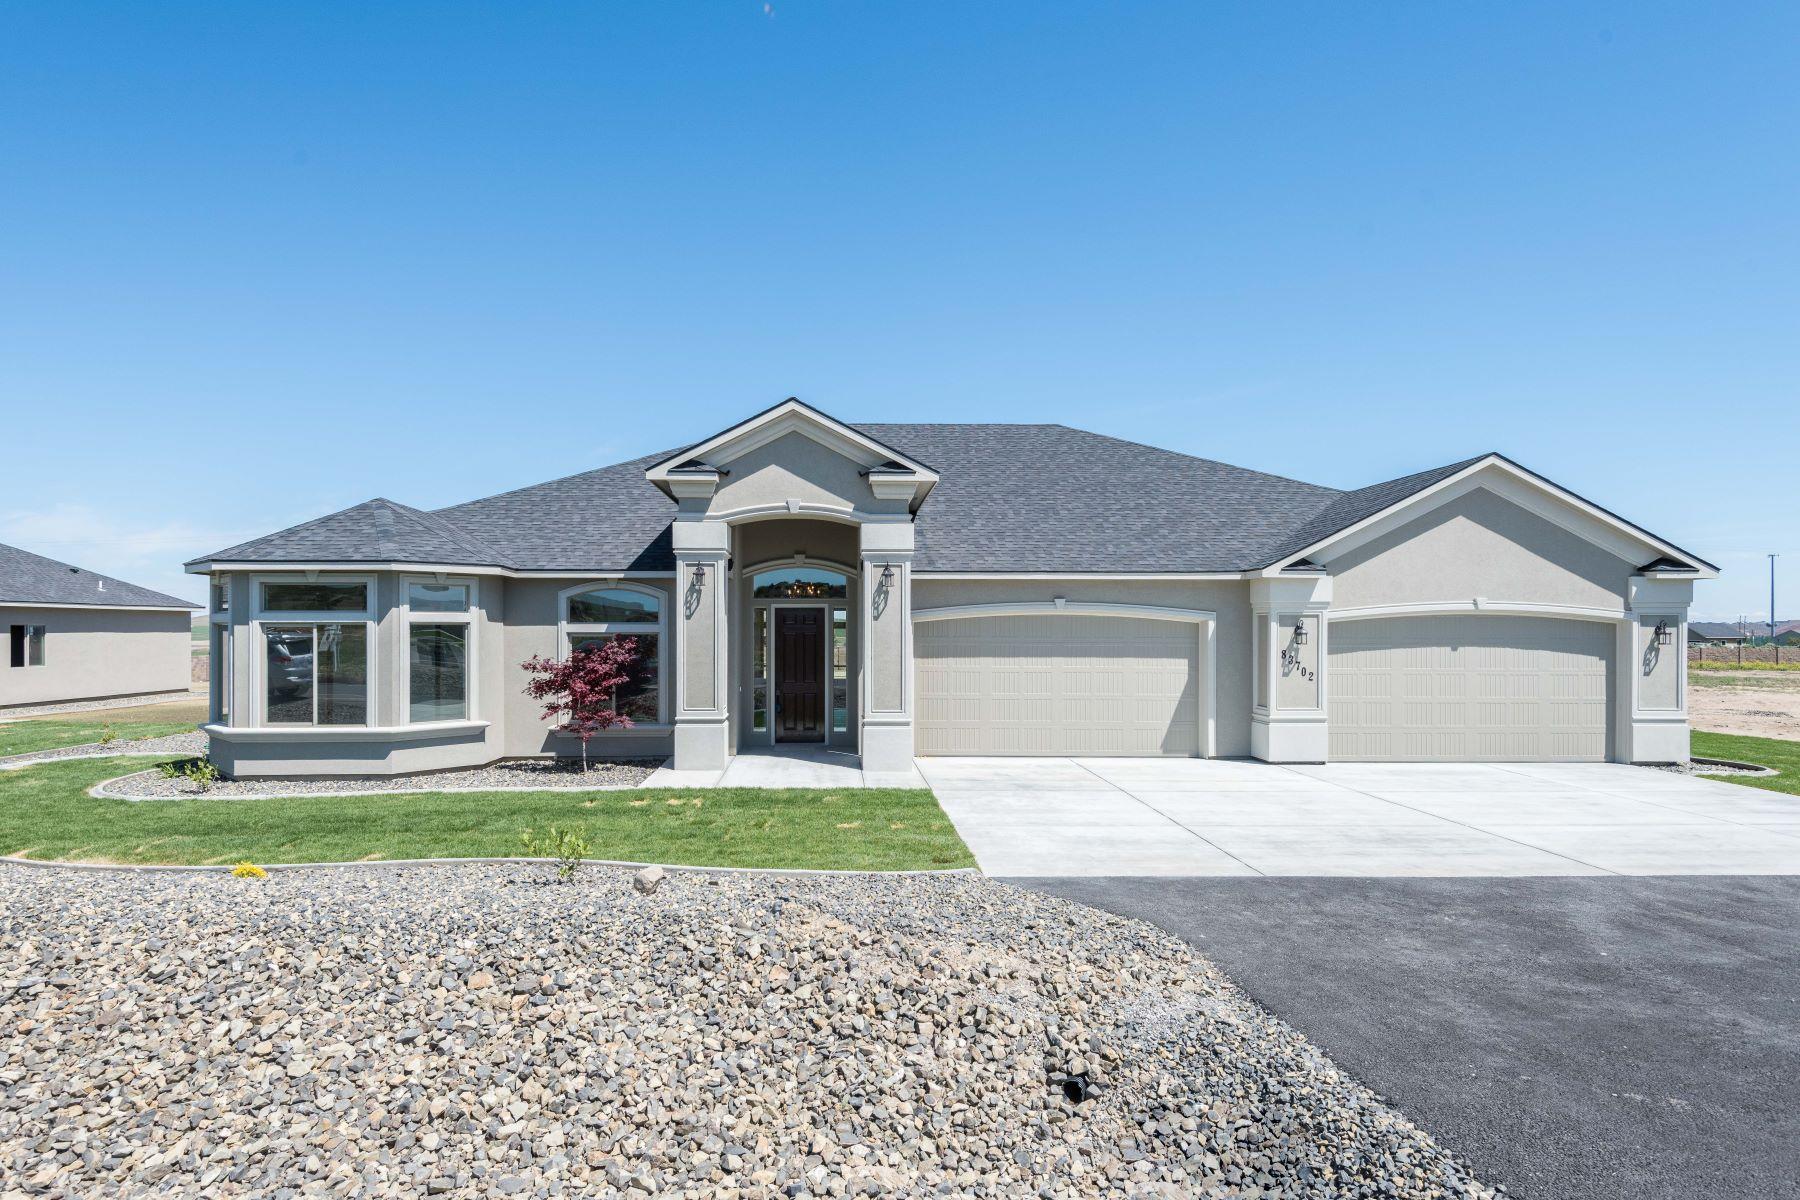 Single Family Home for Sale at New Construction in Summit View 83702 Sagebrush Road Kennewick, Washington 99336 United States